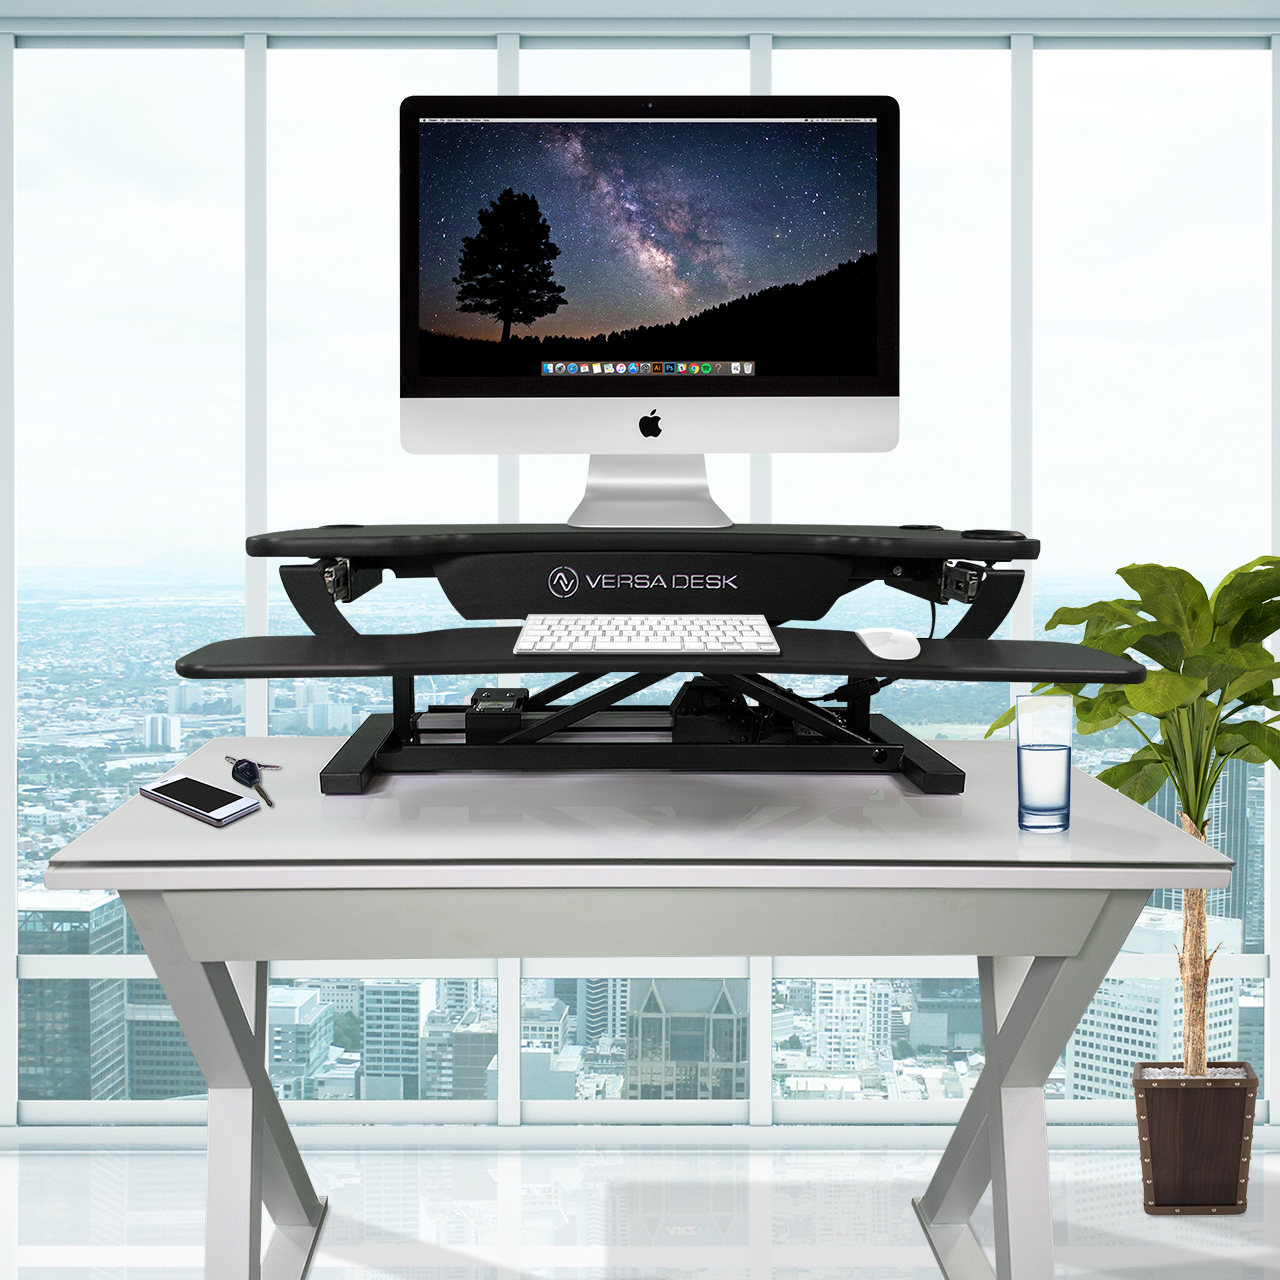 pro stand img review sit riser to versadesk desk versa power